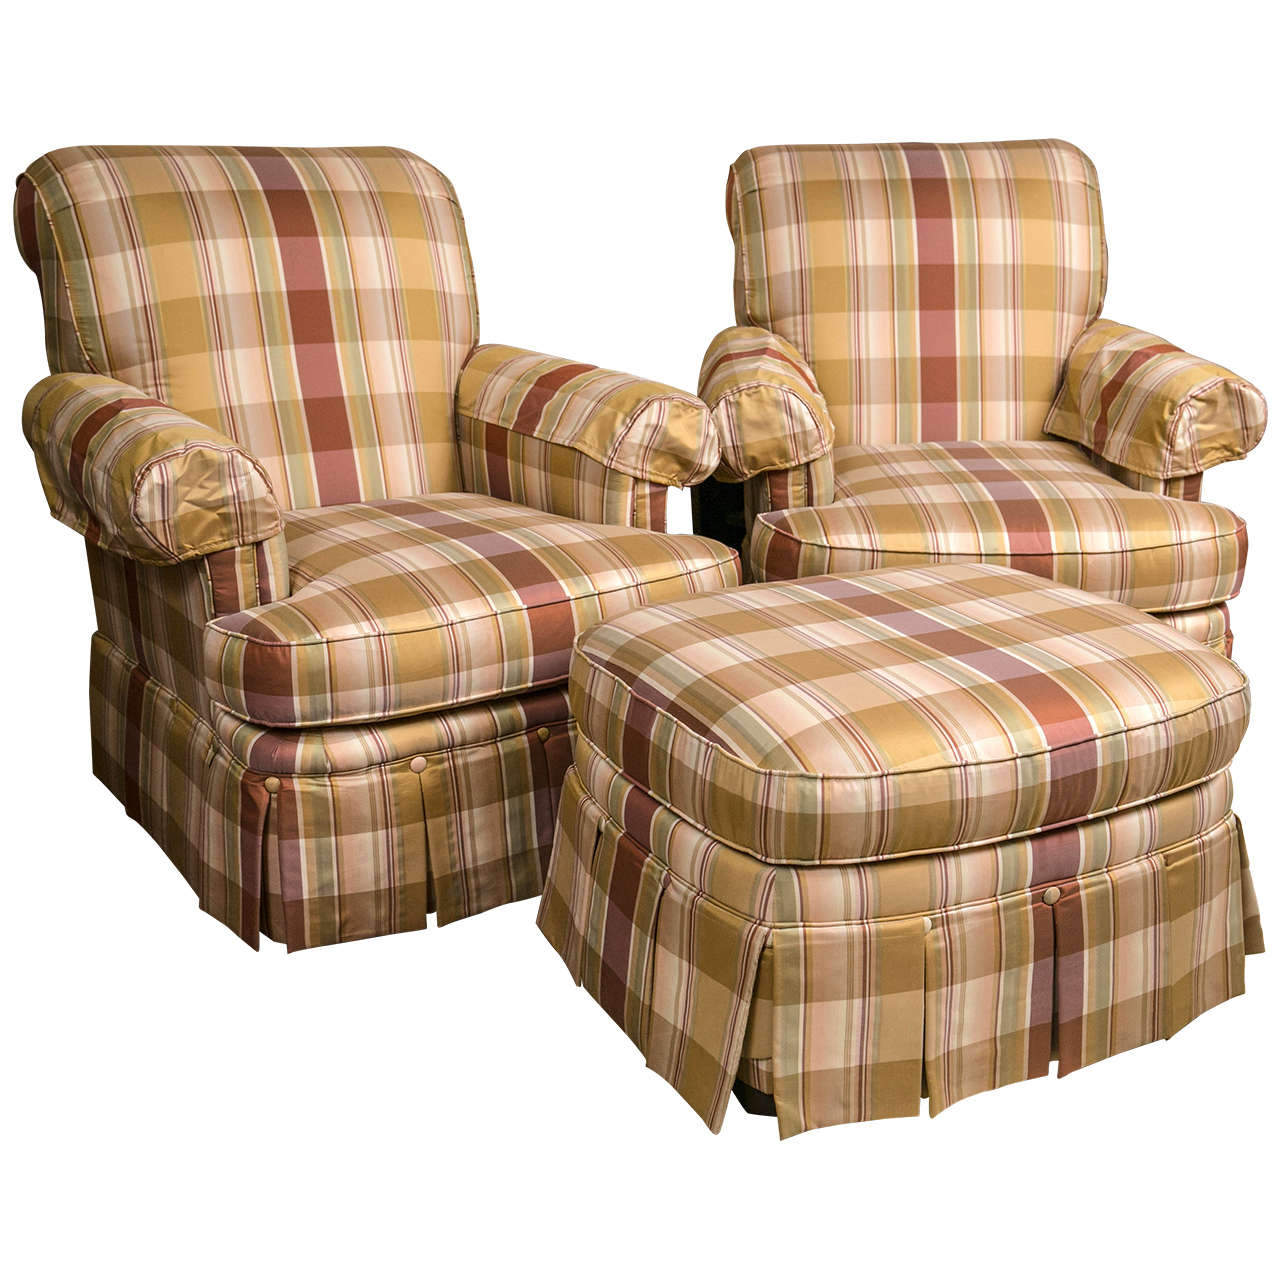 Ordinaire Pair Of Custom Quality Silk Upholstered Plaid Club Chairs And Ottoman For  Sale